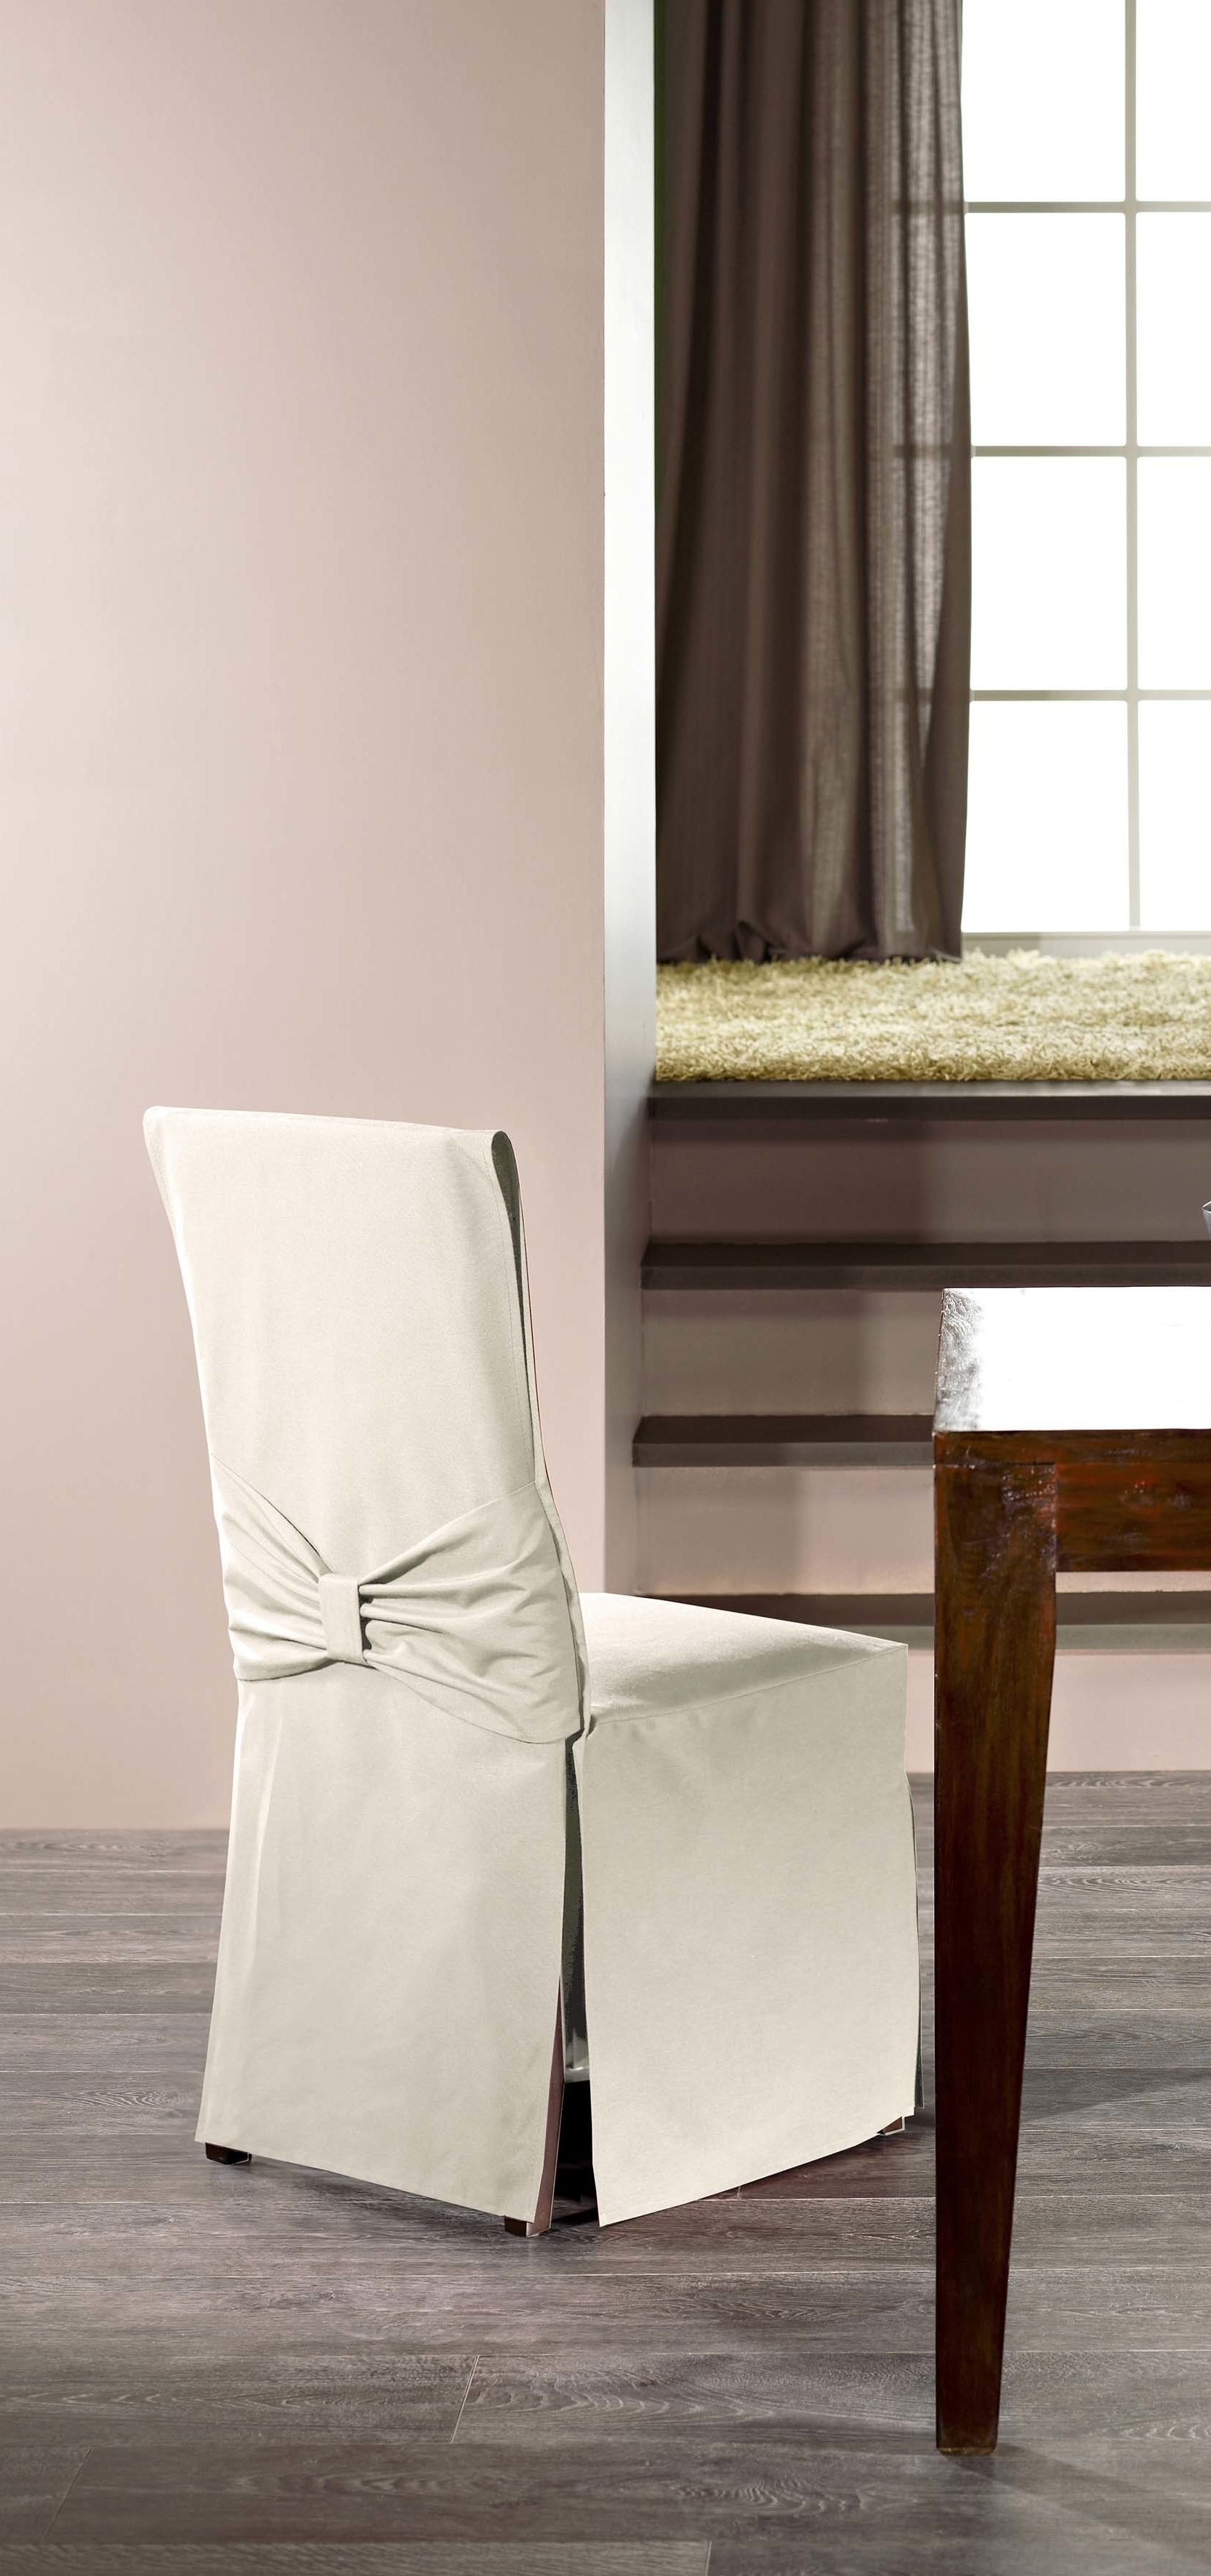 Favorite Sofa And Chair Covers Throughout Sofa & Chair Covers – Mistral Home (View 19 of 20)